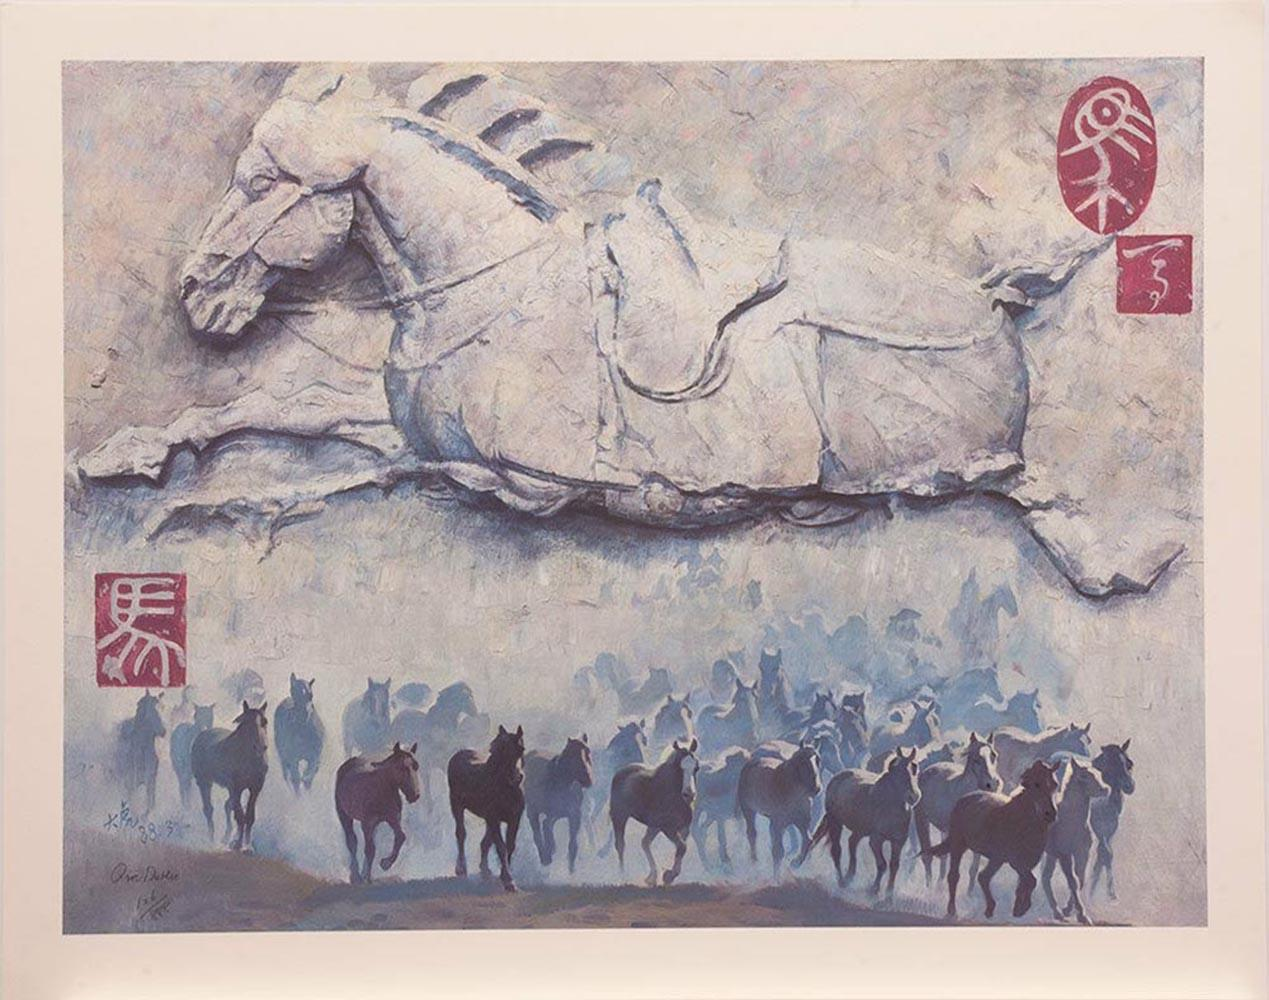 """Qin Dahu's """"Year of the Horse"""" Limited Edition Print"""